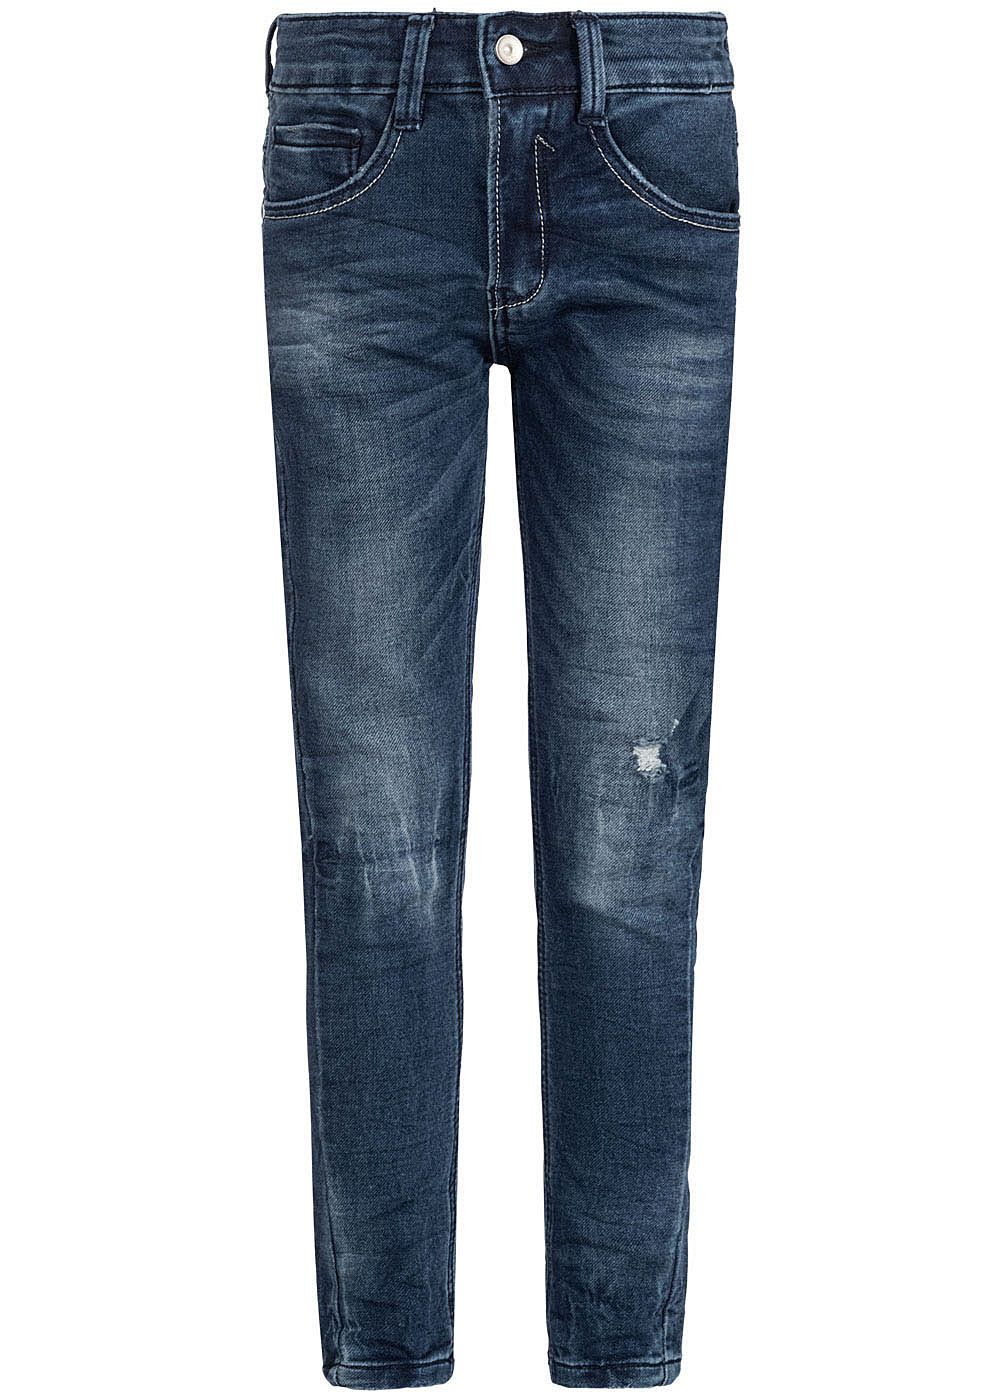 Hailys Kids Jungen Jeans 5-Pockets Destroy Look dunkel blau denim - Art.-Nr.: 19104371